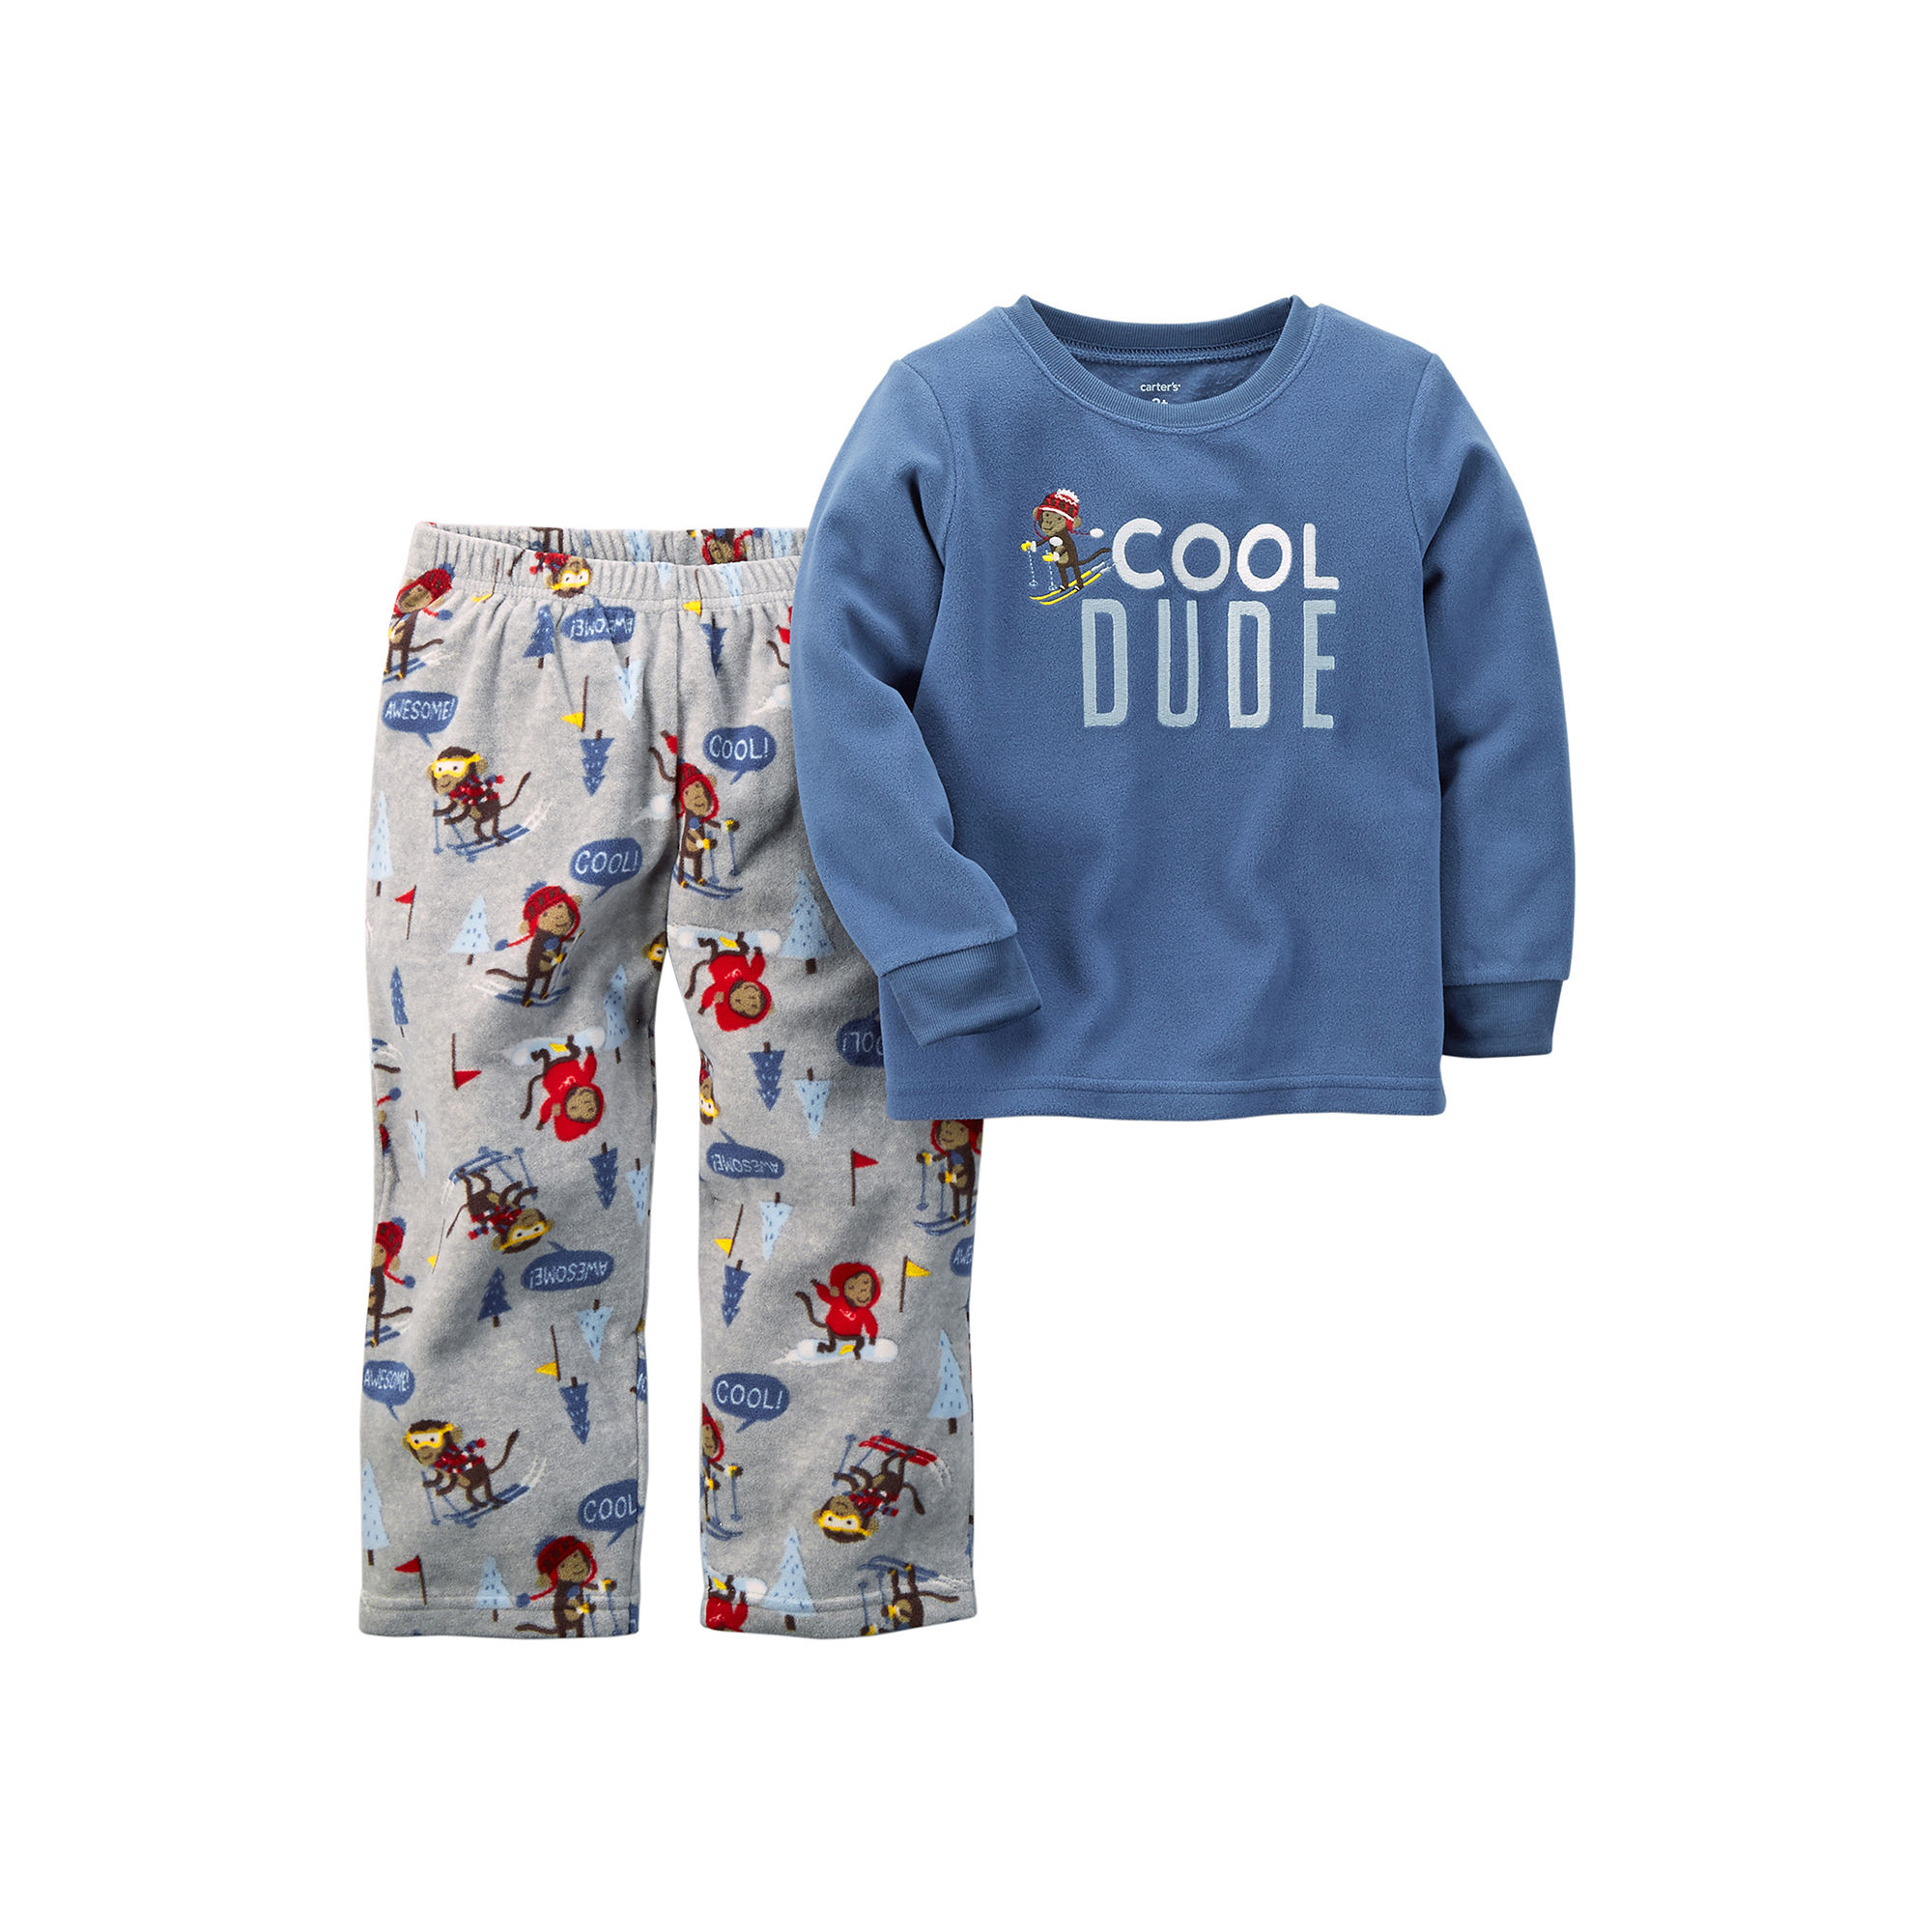 577298d59 UPC 888510793830 - Carter s Cool Dude Pajama Set - Toddler Boys 2t ...